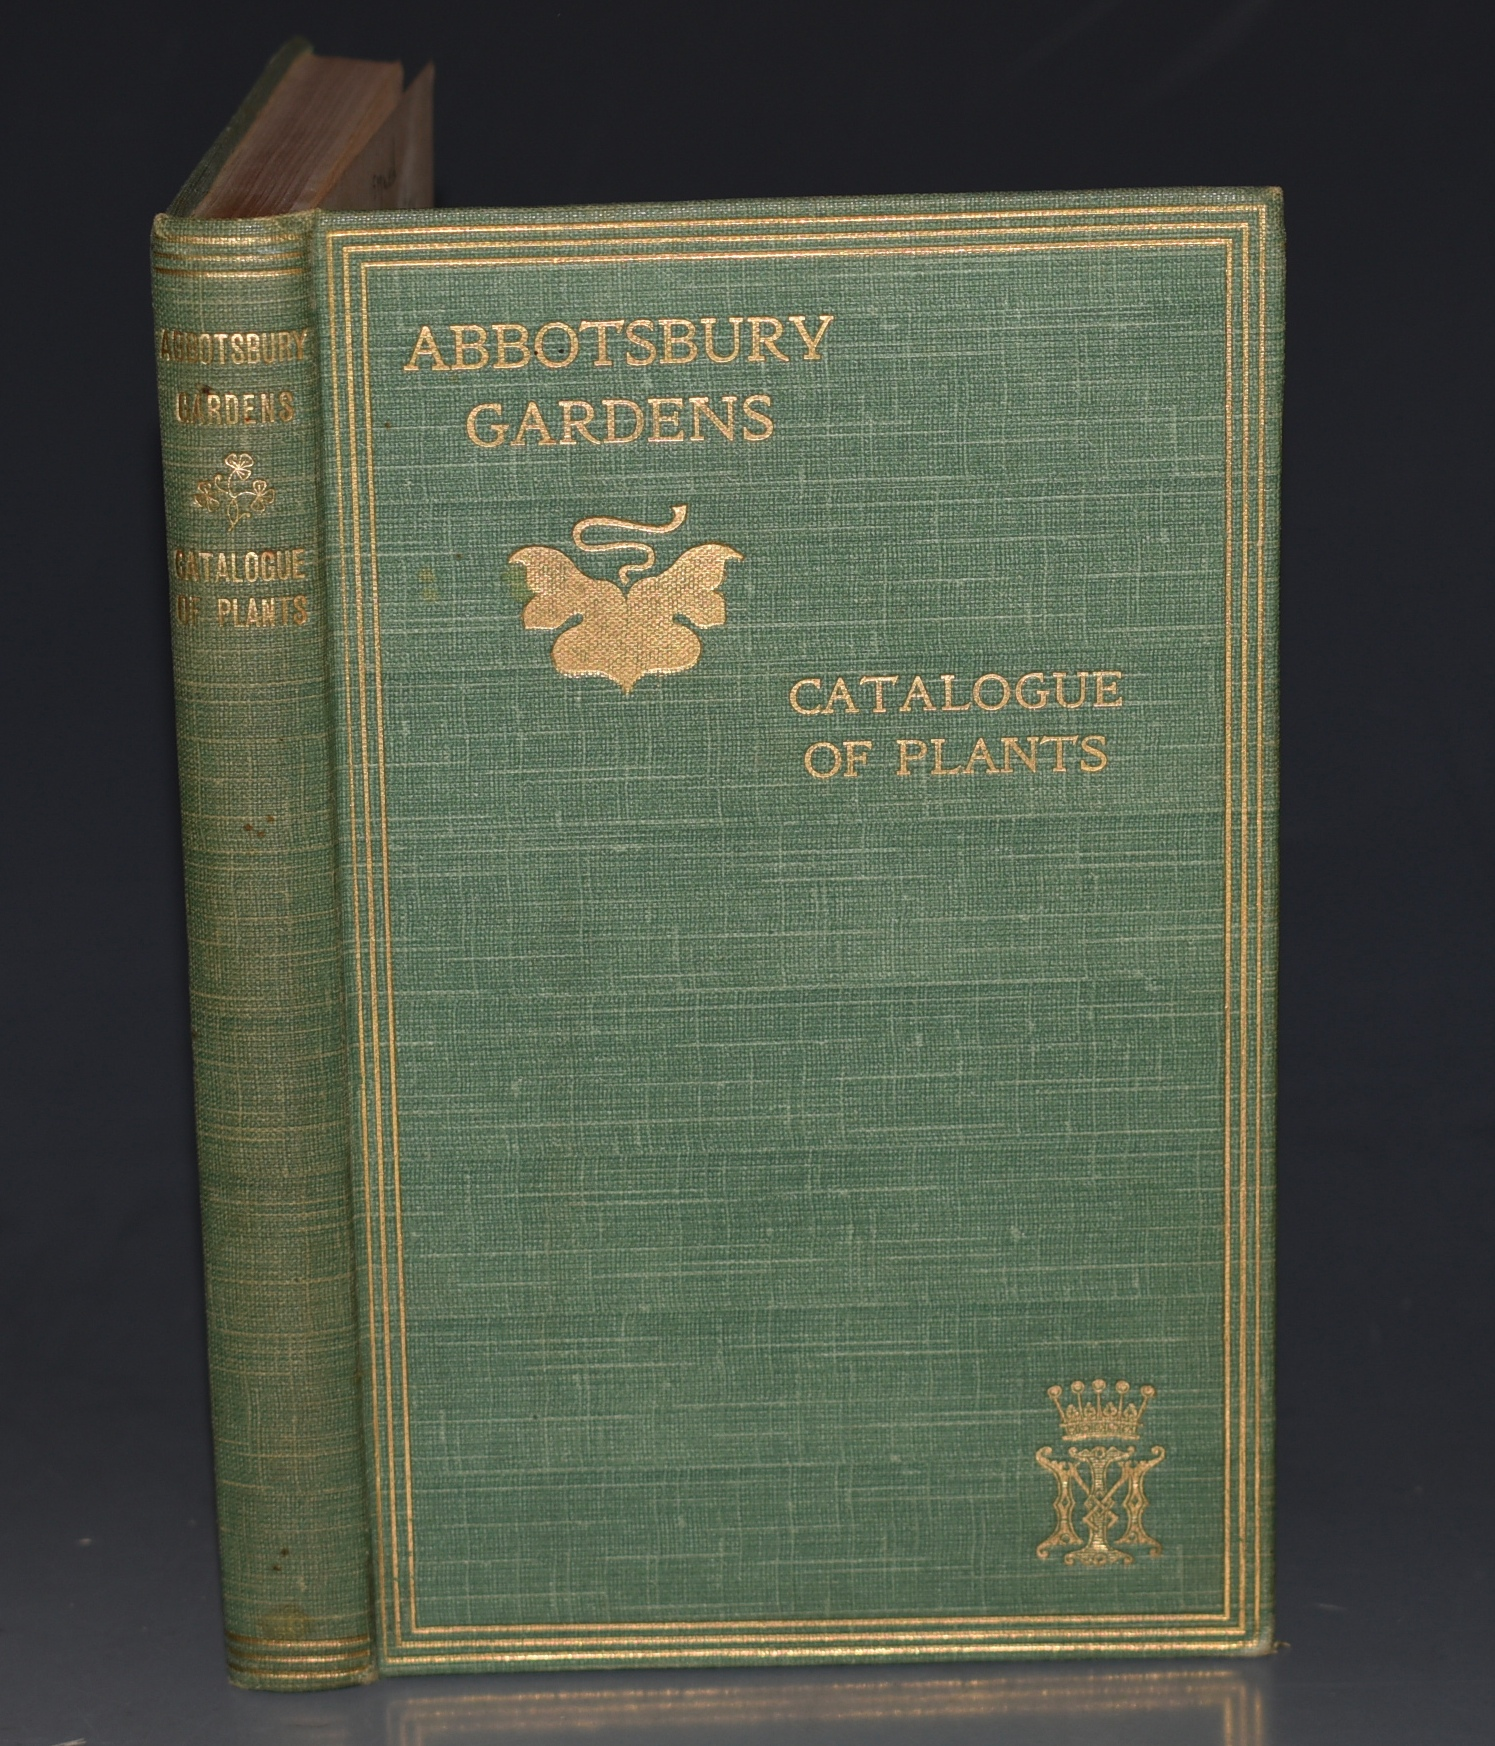 Image for Catalogue of Plants in Abbotsbury Gardens, 1899. (Dorset).